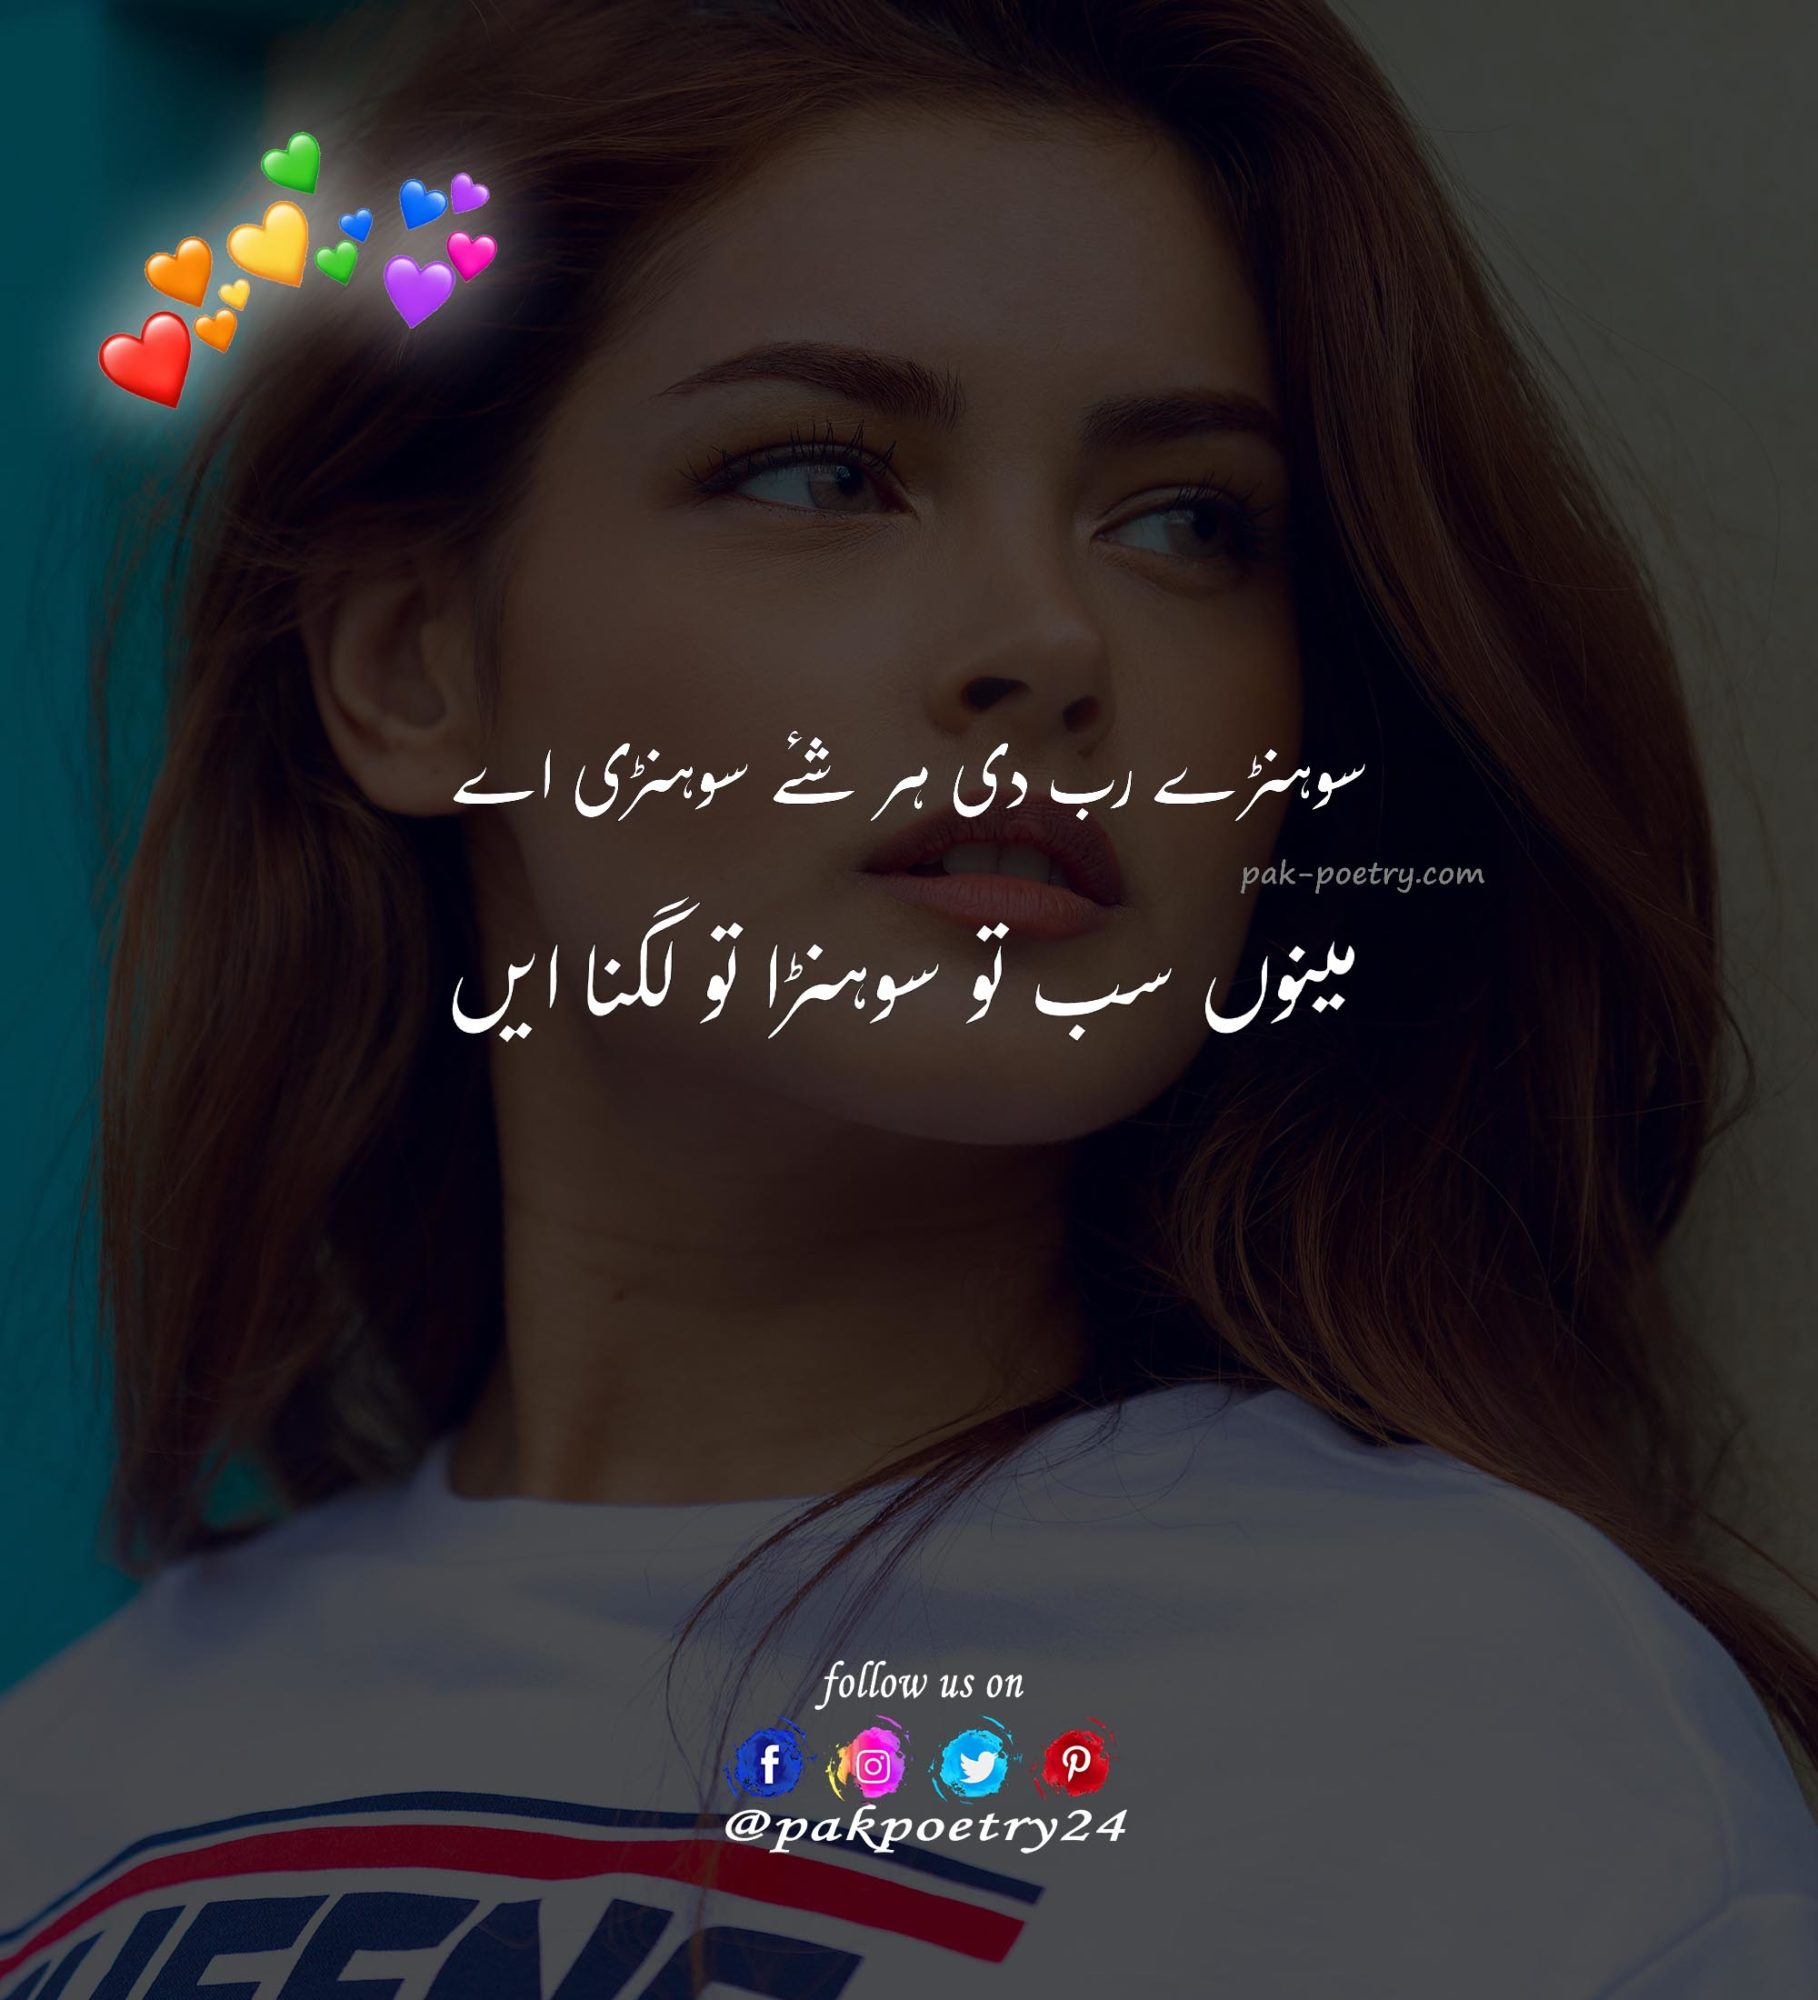 love poetry, poetry love, love poetry in urdu, romantic poetry, love poetry urdu, urdu love poetry, urdu romantic poetry, poetry in urdu love, poetry pics, poetry urdu love, poetry for love, love poetry in urdu romantic, romantic love poetry in urdu, romantic love poetry, poetry about love, poetry of love, poetry in love, poetry in urdu romantic, poetry in urdu in love, poetry urdu for love, poetry pic love,